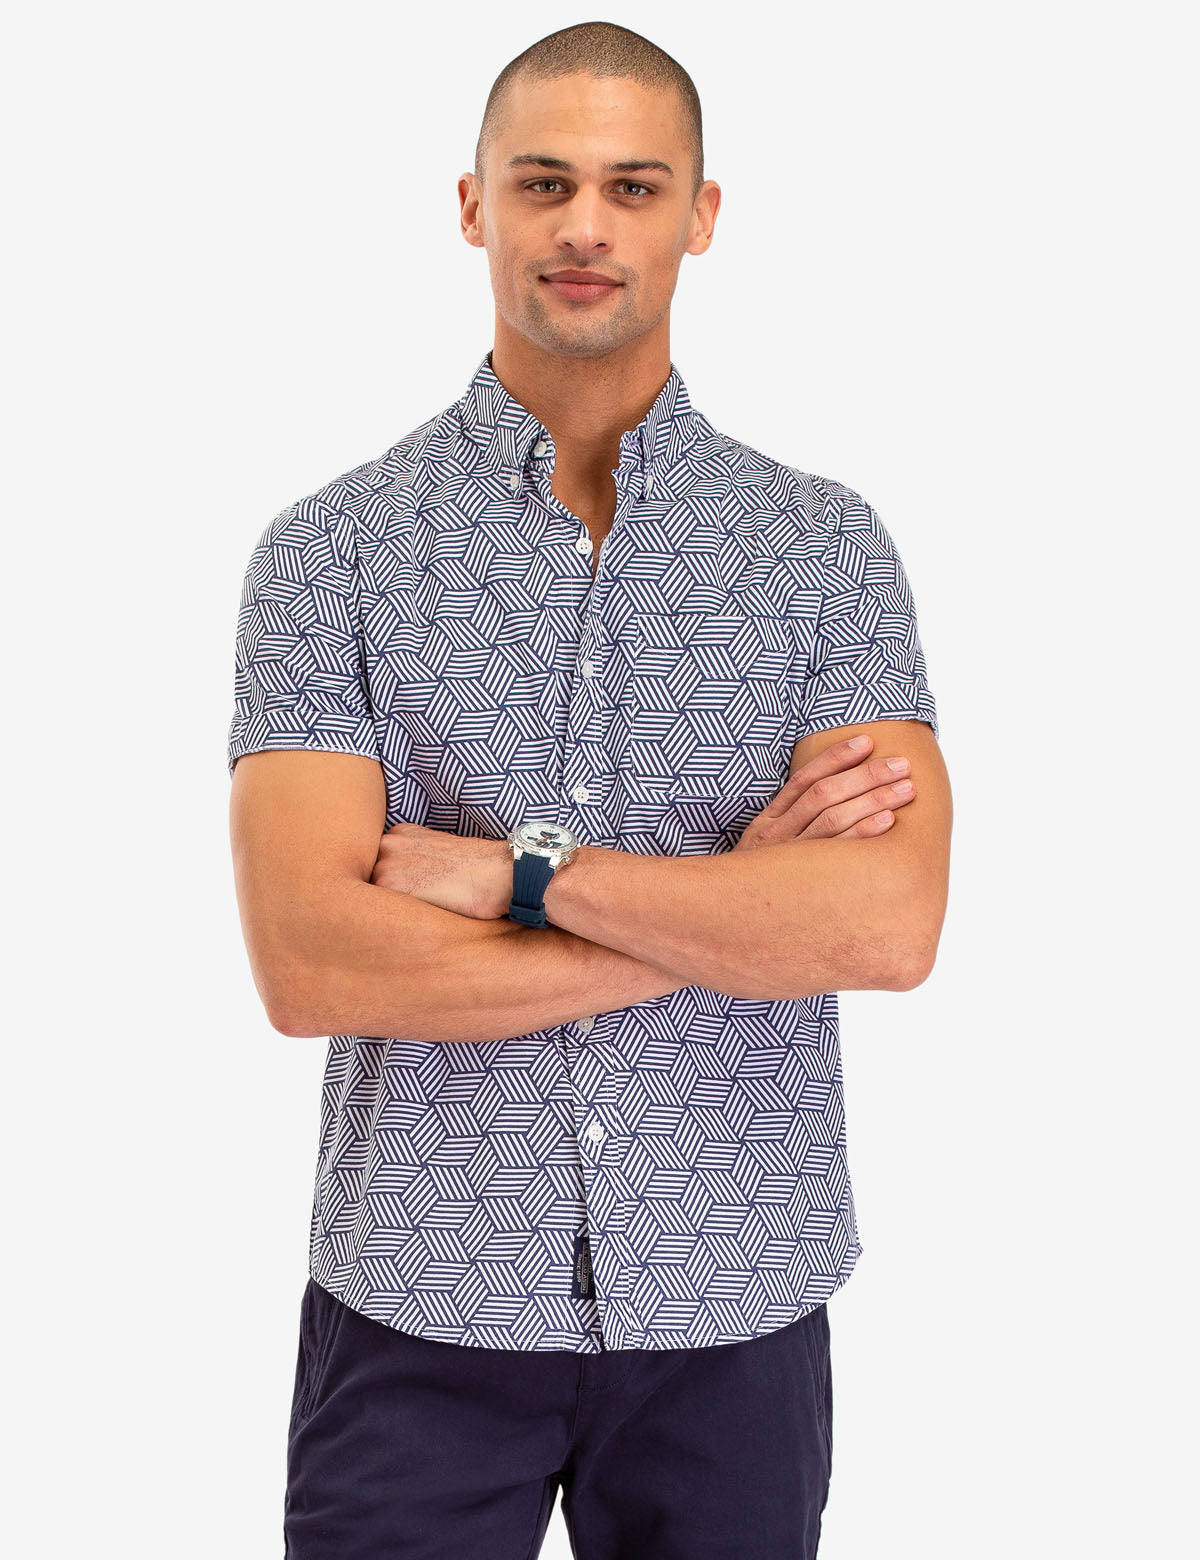 GEOMETRIC PRINT SHORT SLEEVE SHIRT - U.S. Polo Assn.